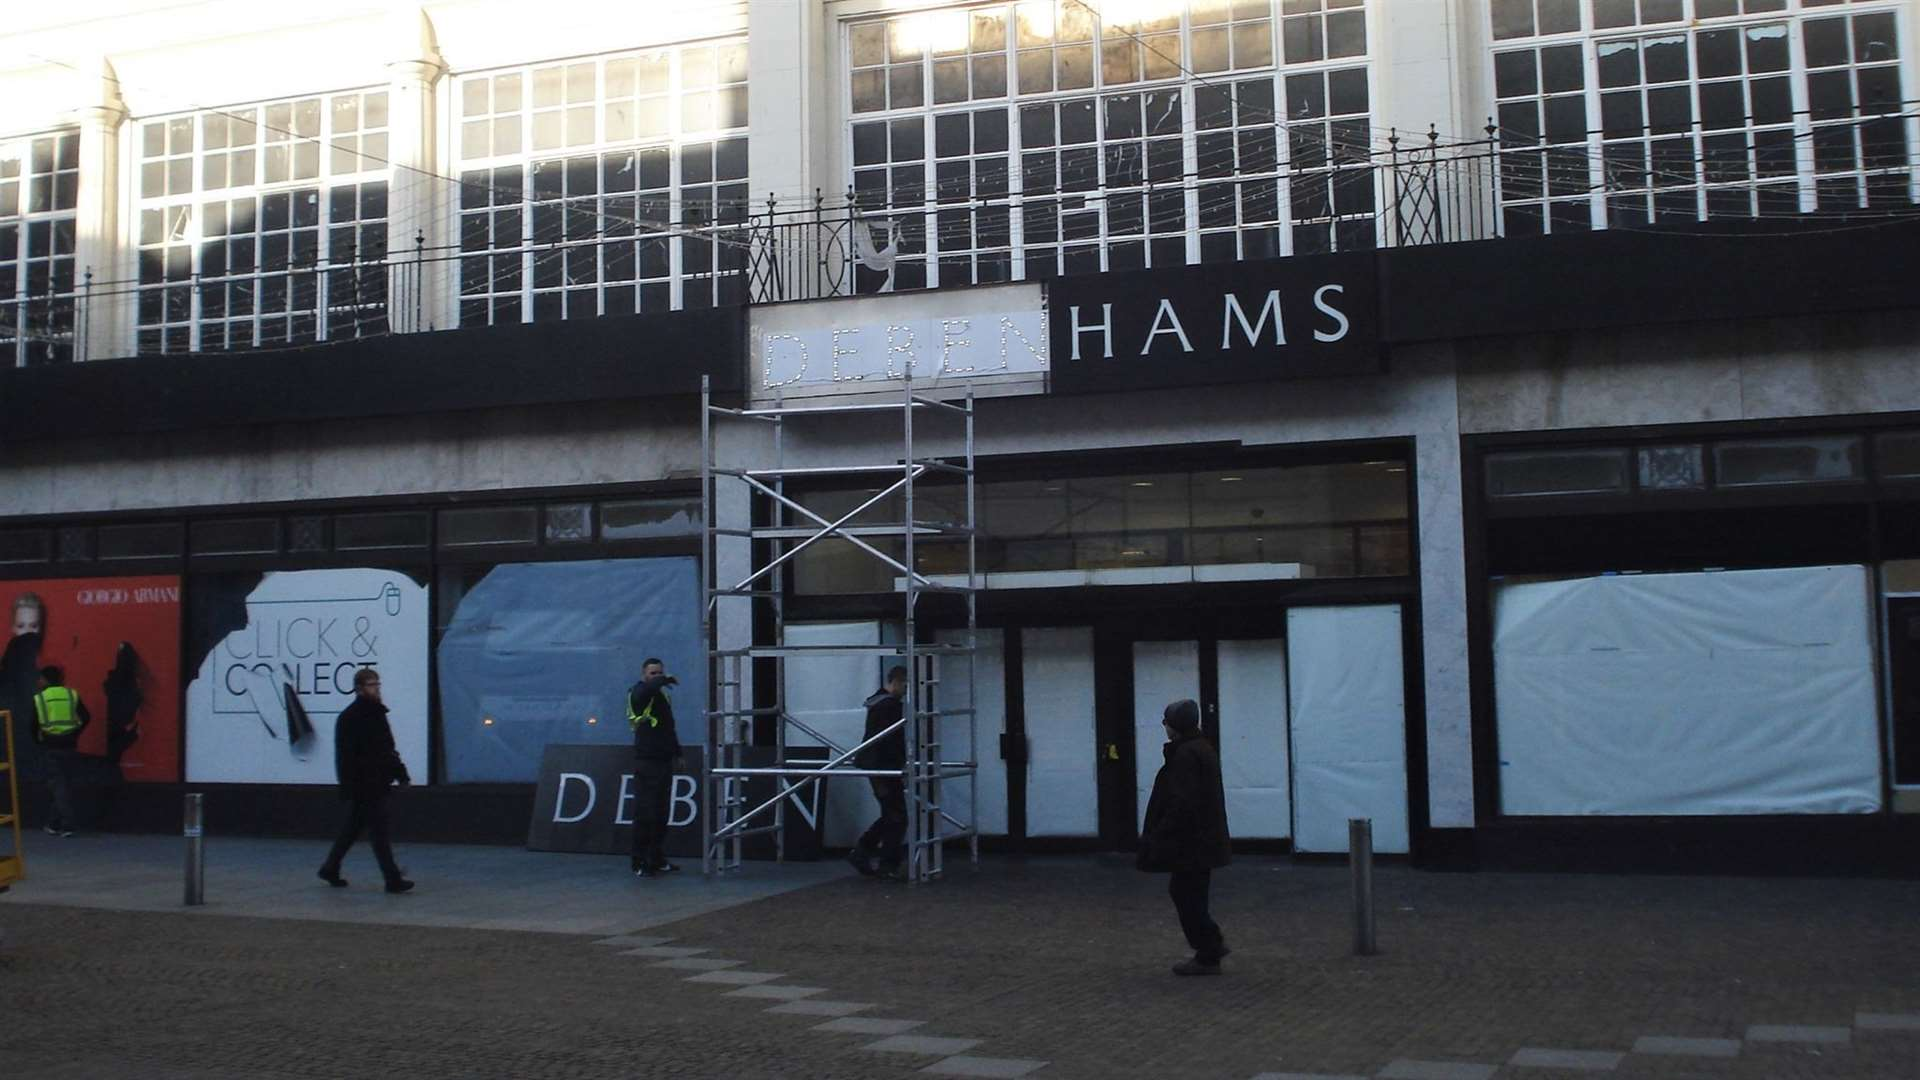 The sign was removed this morning. Picture credit: Legends of Folkestone